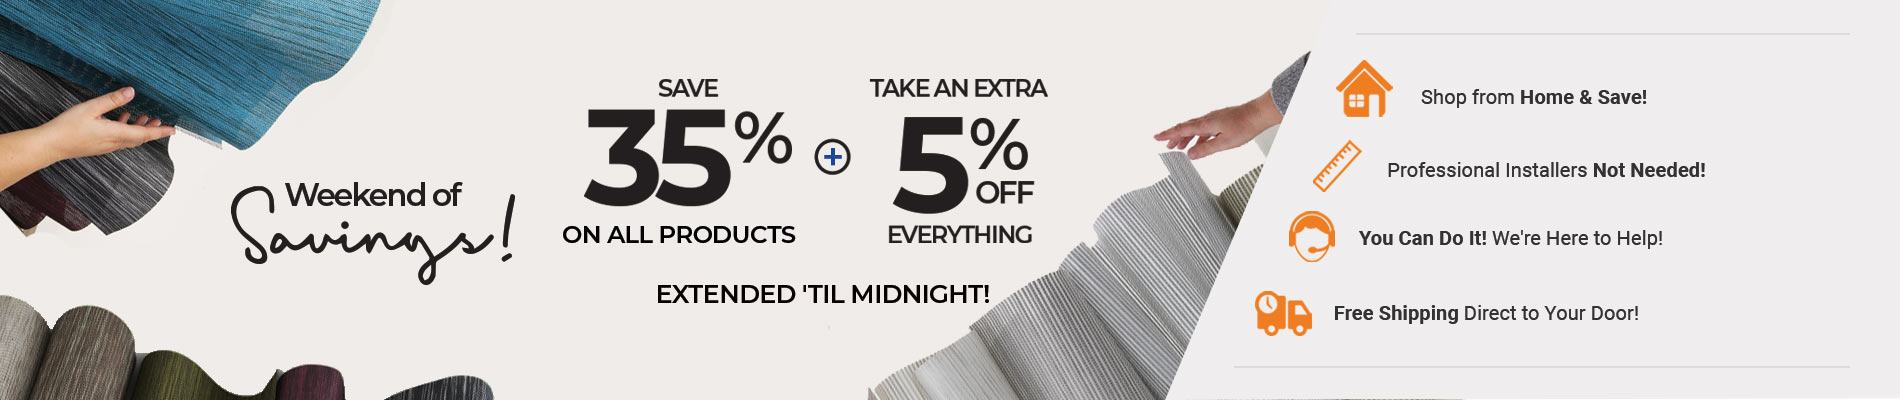 Save 35% + Extra 5% Off Everything